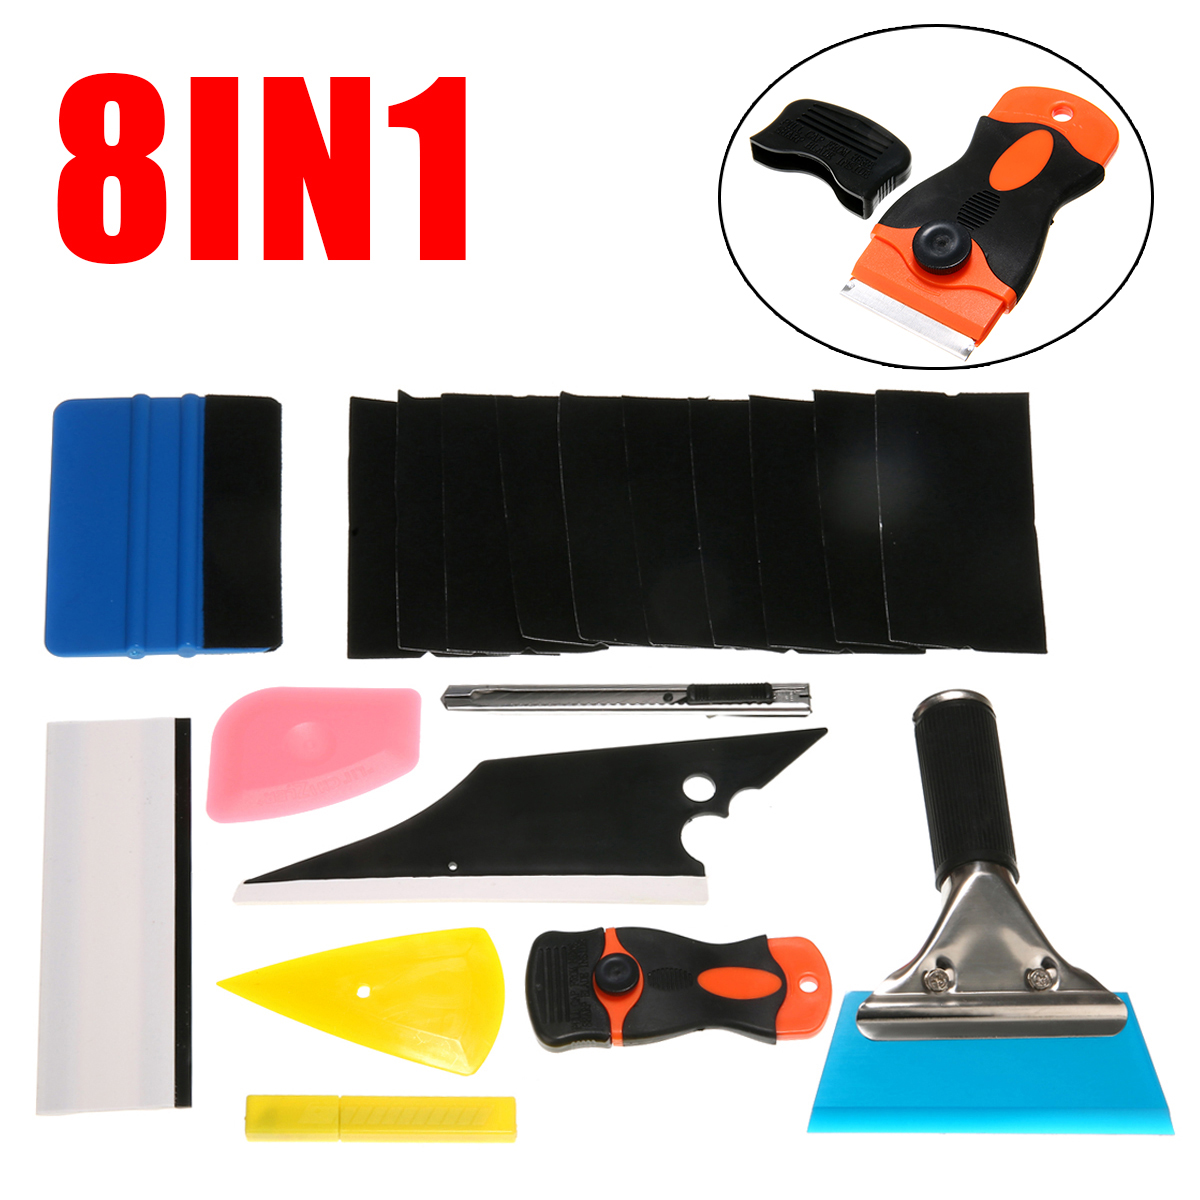 New 8 in 1 Window Tint Tools Kit Auto Car Repair Accessories For Vinyl Film Tinting Squeegee For Car Film Wrap Processing